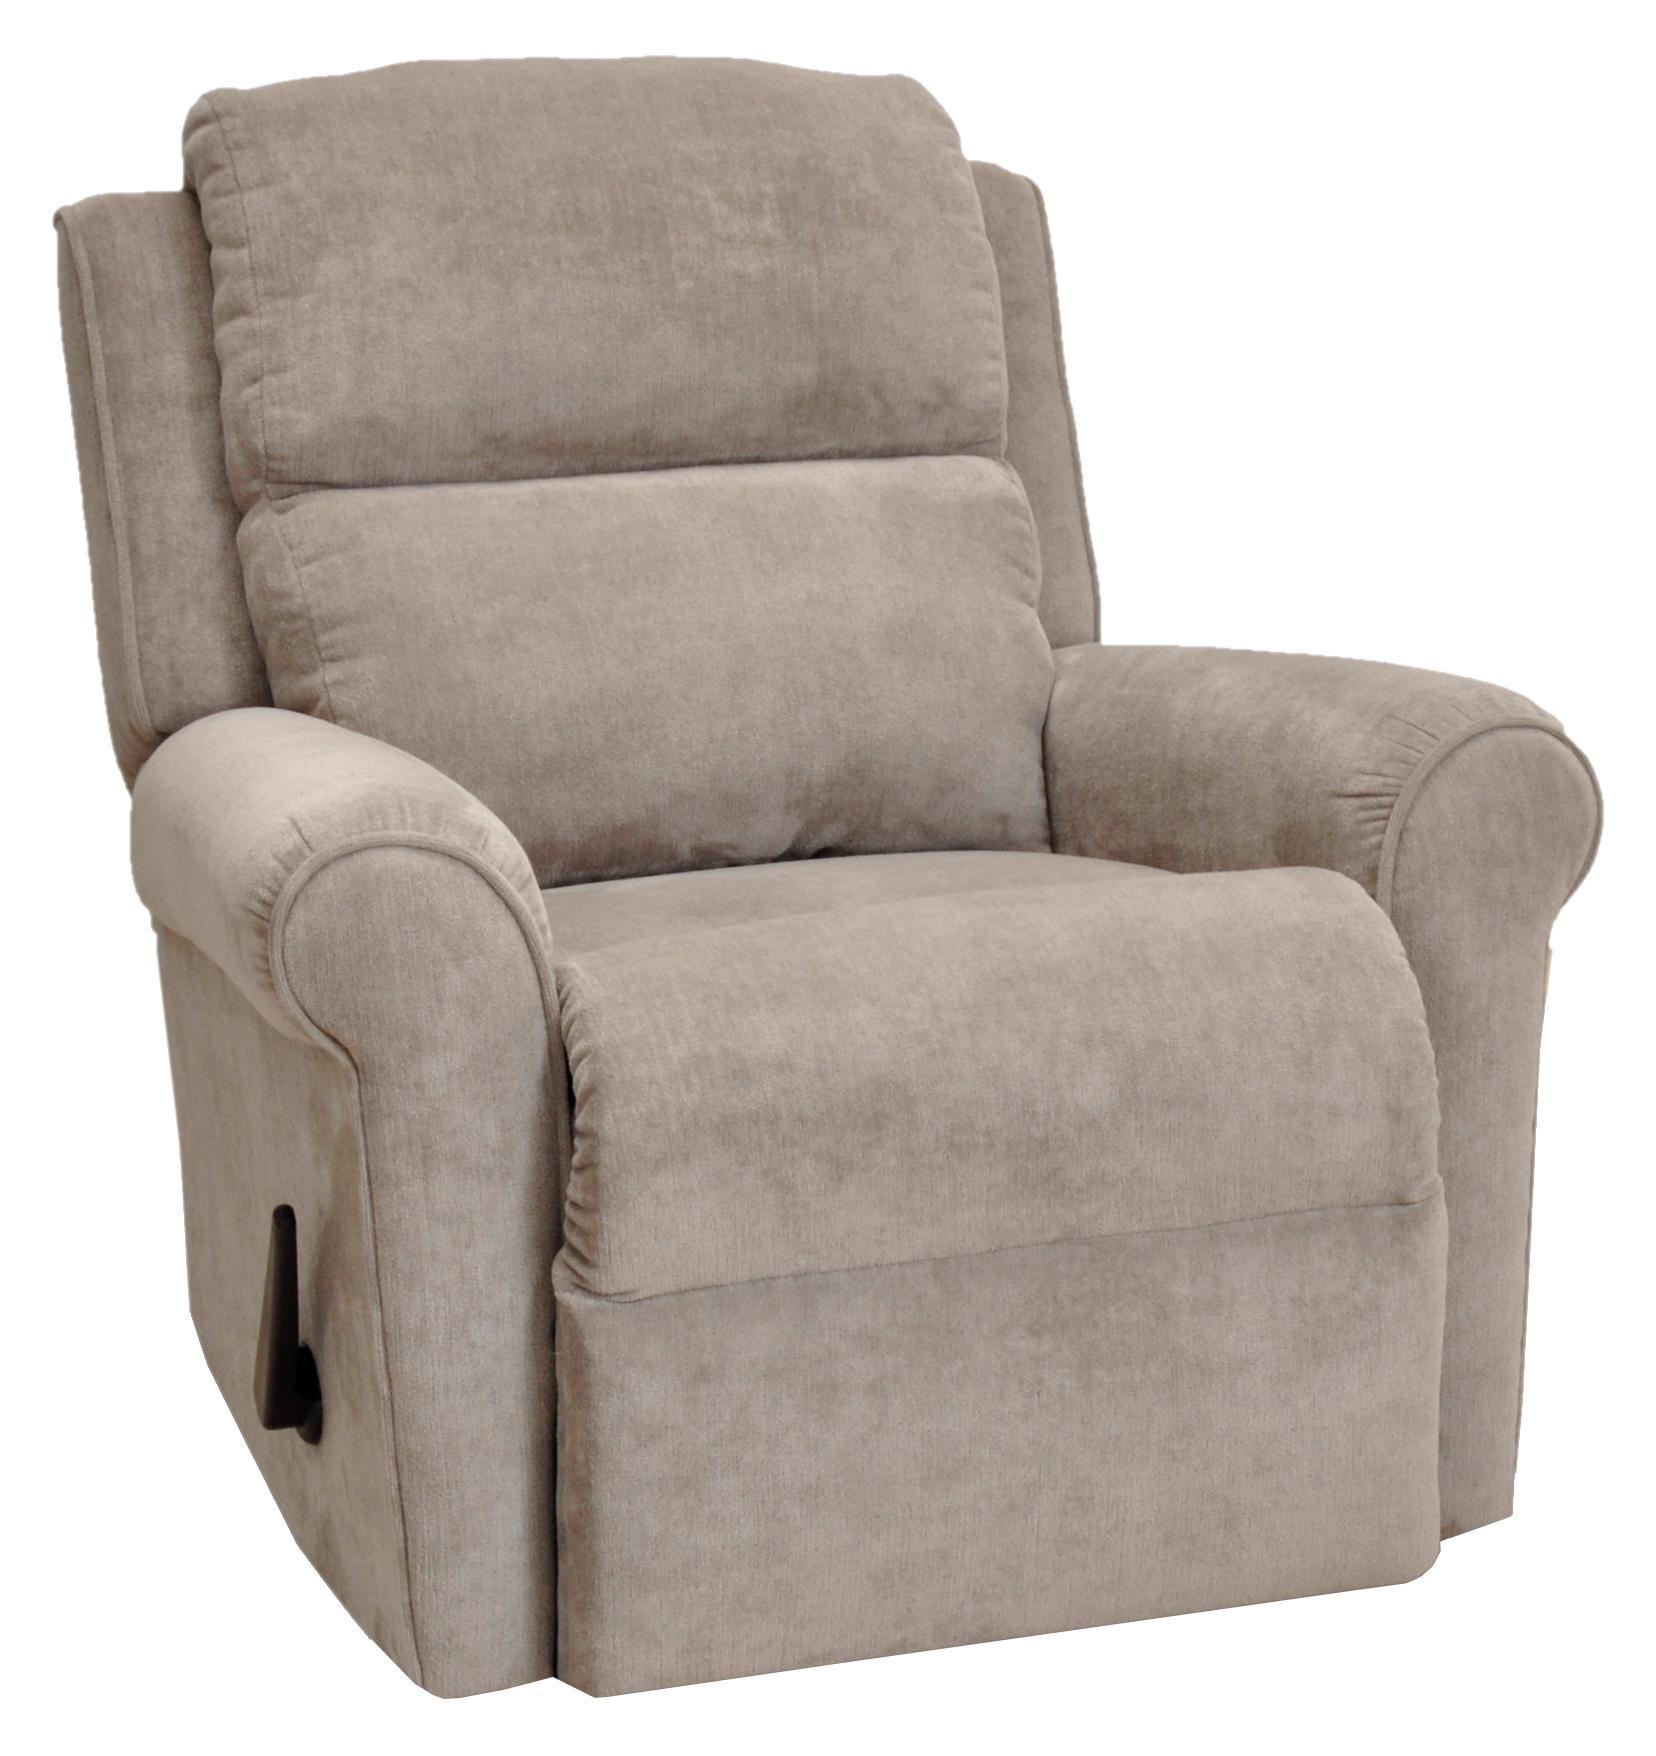 Franklin Franklin Recliners Serenity Power Wall Rec. w/ Layflat and Lift - Item Number: 4406-06-8310-06